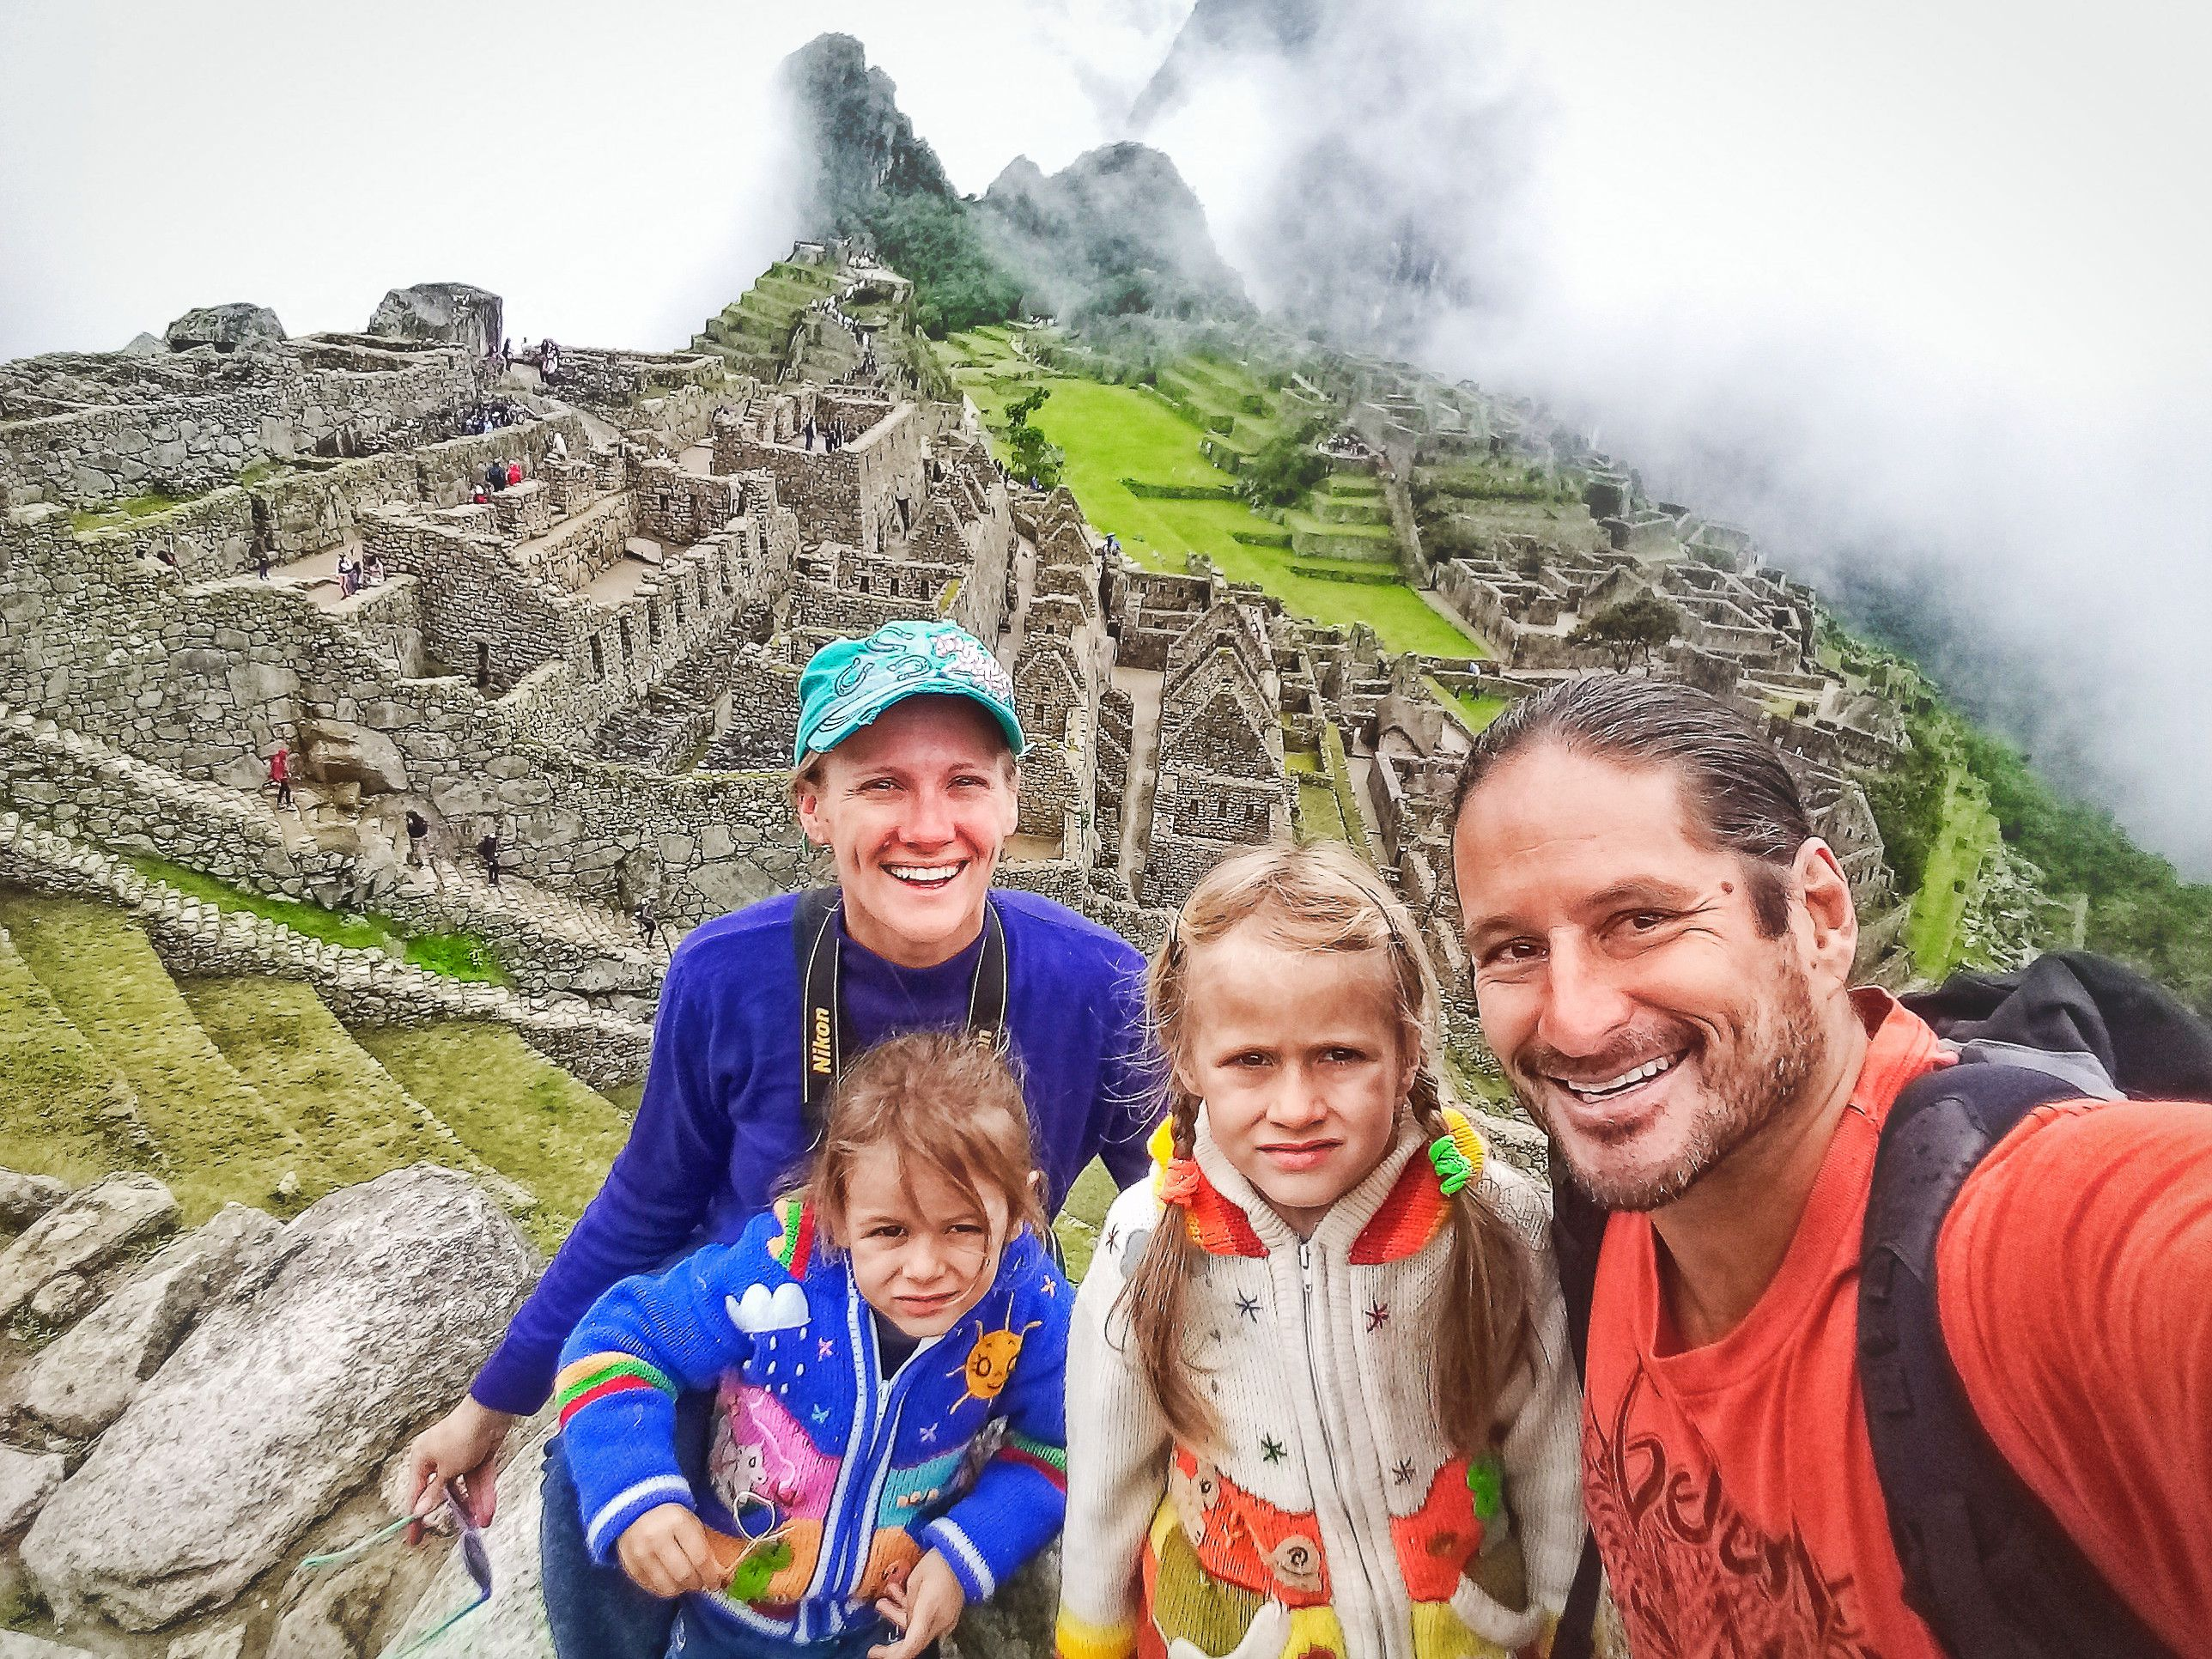 Family taking a selfie in front of Machu Picchu in Peru